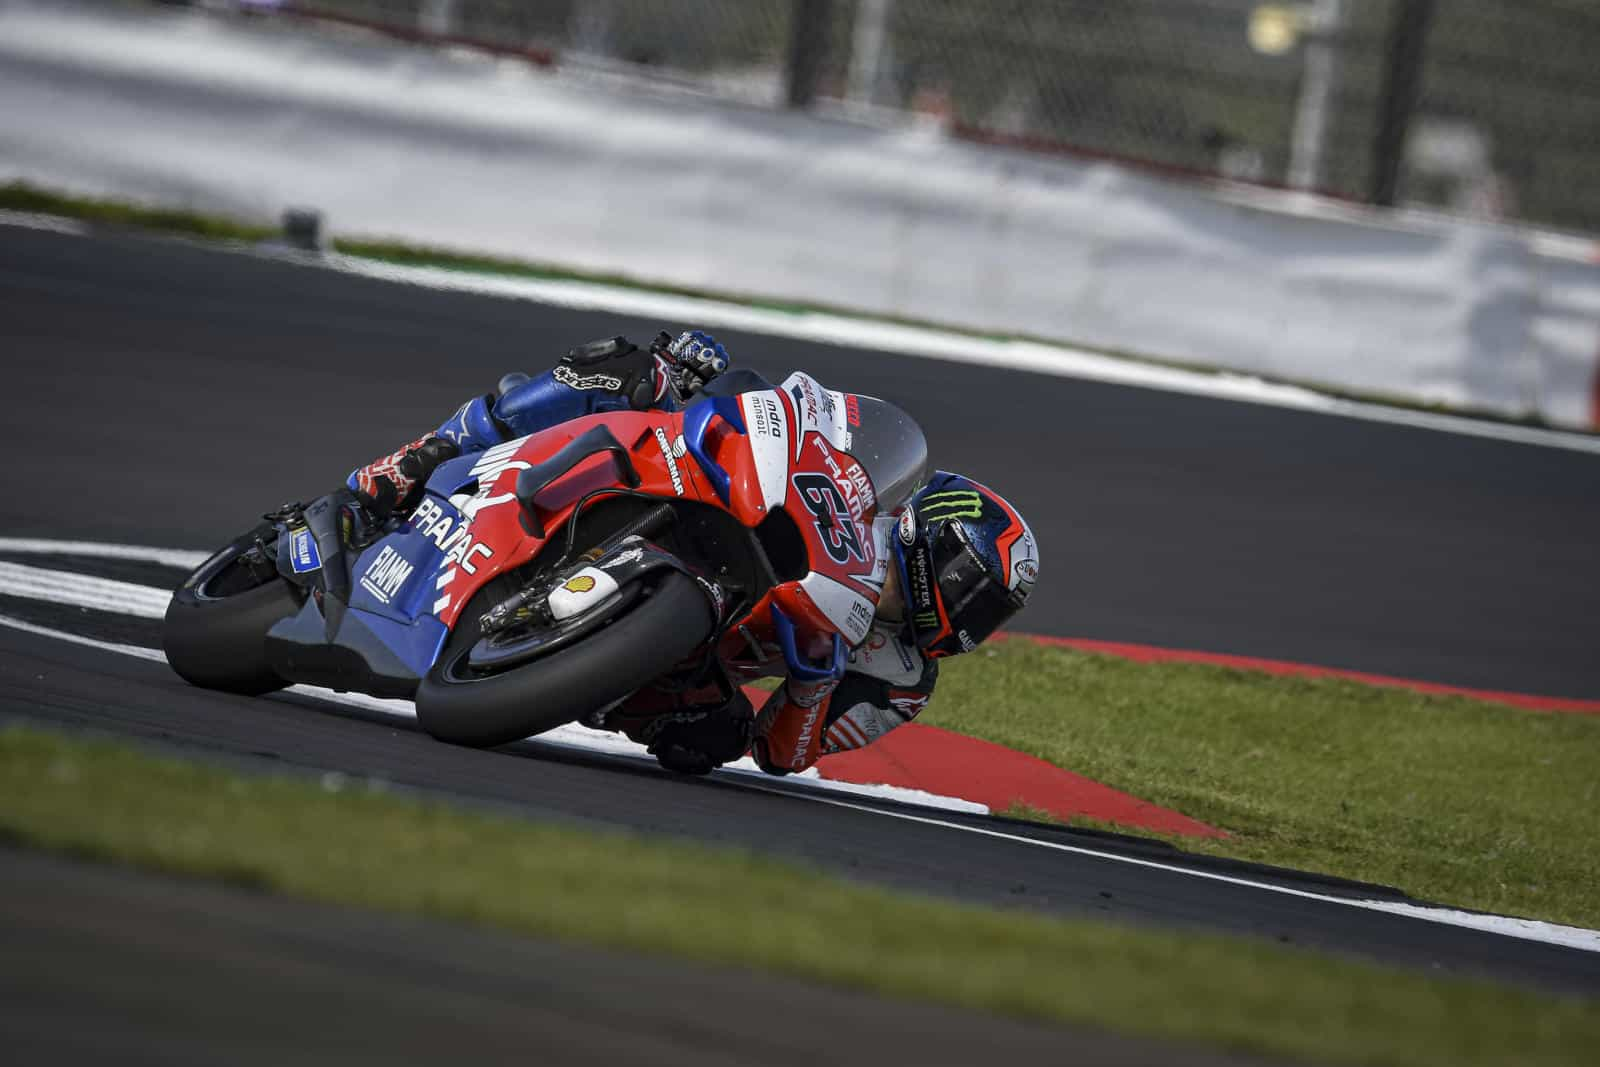 pramac at silverstone for british gp